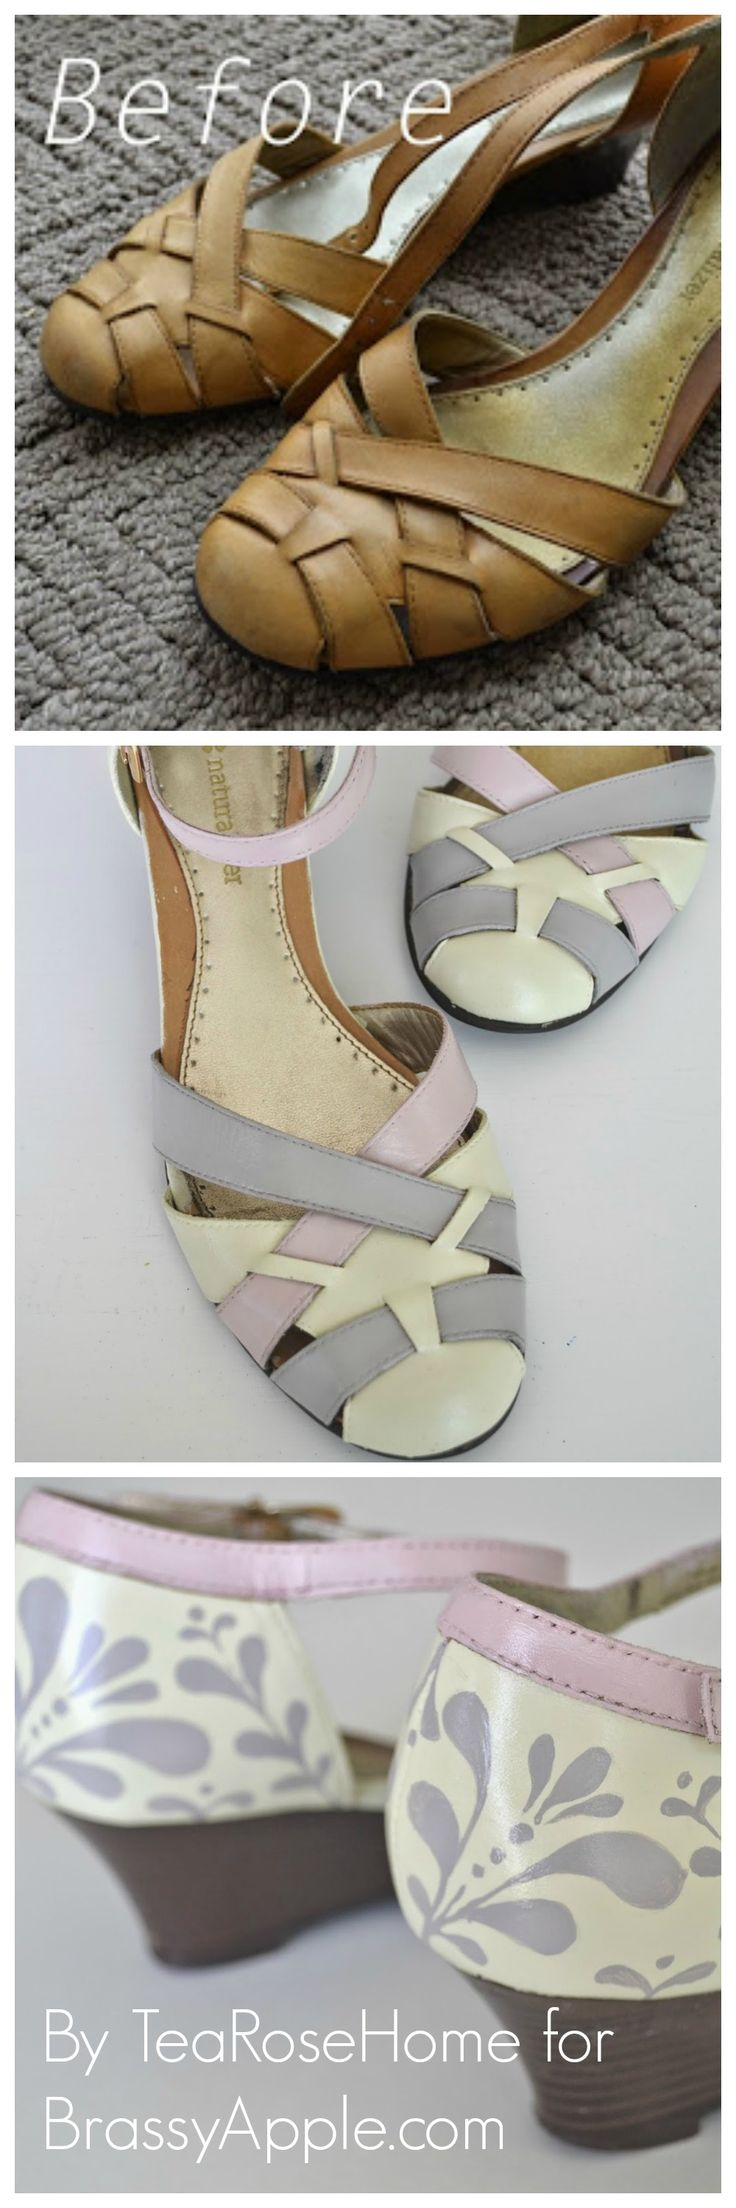 Refashion sandals or shoes with paint from @Sachiko Asai Aldous on BrassyApple.com #paint #makeover #fashion